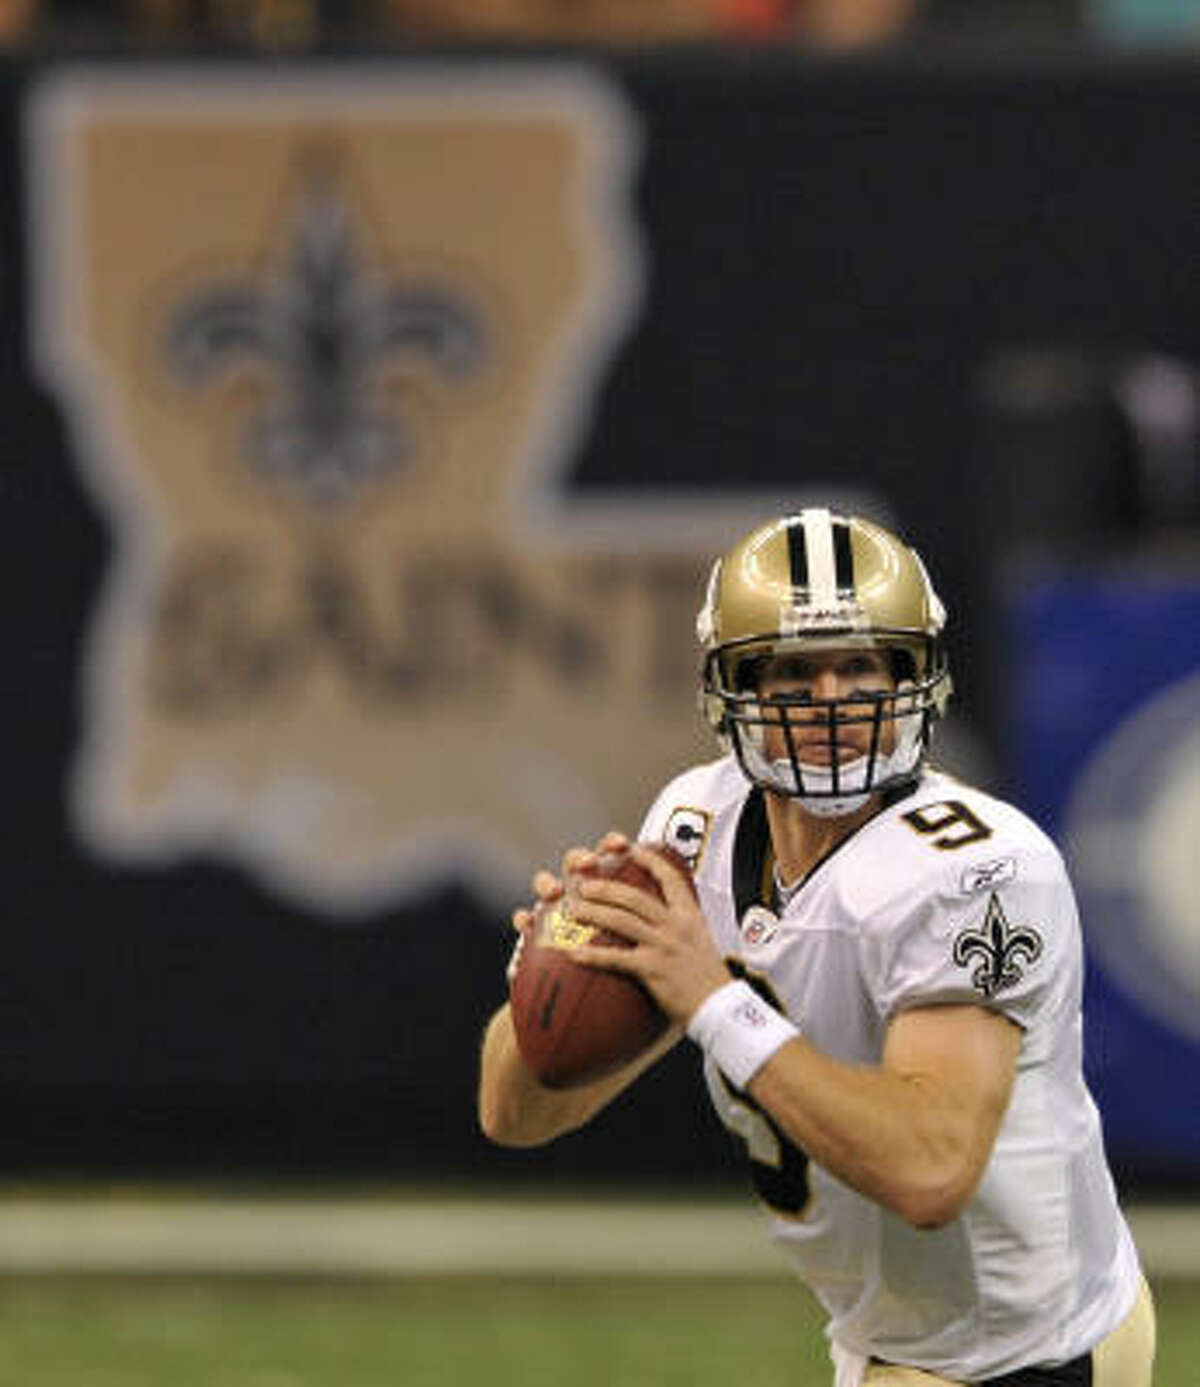 Sept. 13: Saints 45, Lions 27 Record: 1-0 Drew Brees looked even better than last year, which was bad news for a Detroit Lions team trying to win for the first time since 2007. Brees tied a Saints record with six touchdown passes and threw for 358 yards in a victory that extended the Detroit Lions' regular-season losing streak to 18. Two of Brees' touchdown passes went to Jeremy Shockey, who hadn't scored since being traded from the New York Giants to New Orleans last season. Brees connected with Marques Colston for 9 yards, Robert Meachem for 39, Shockey for 1 and 15, Devery Henderson for 58 and Heath Evans for 13.